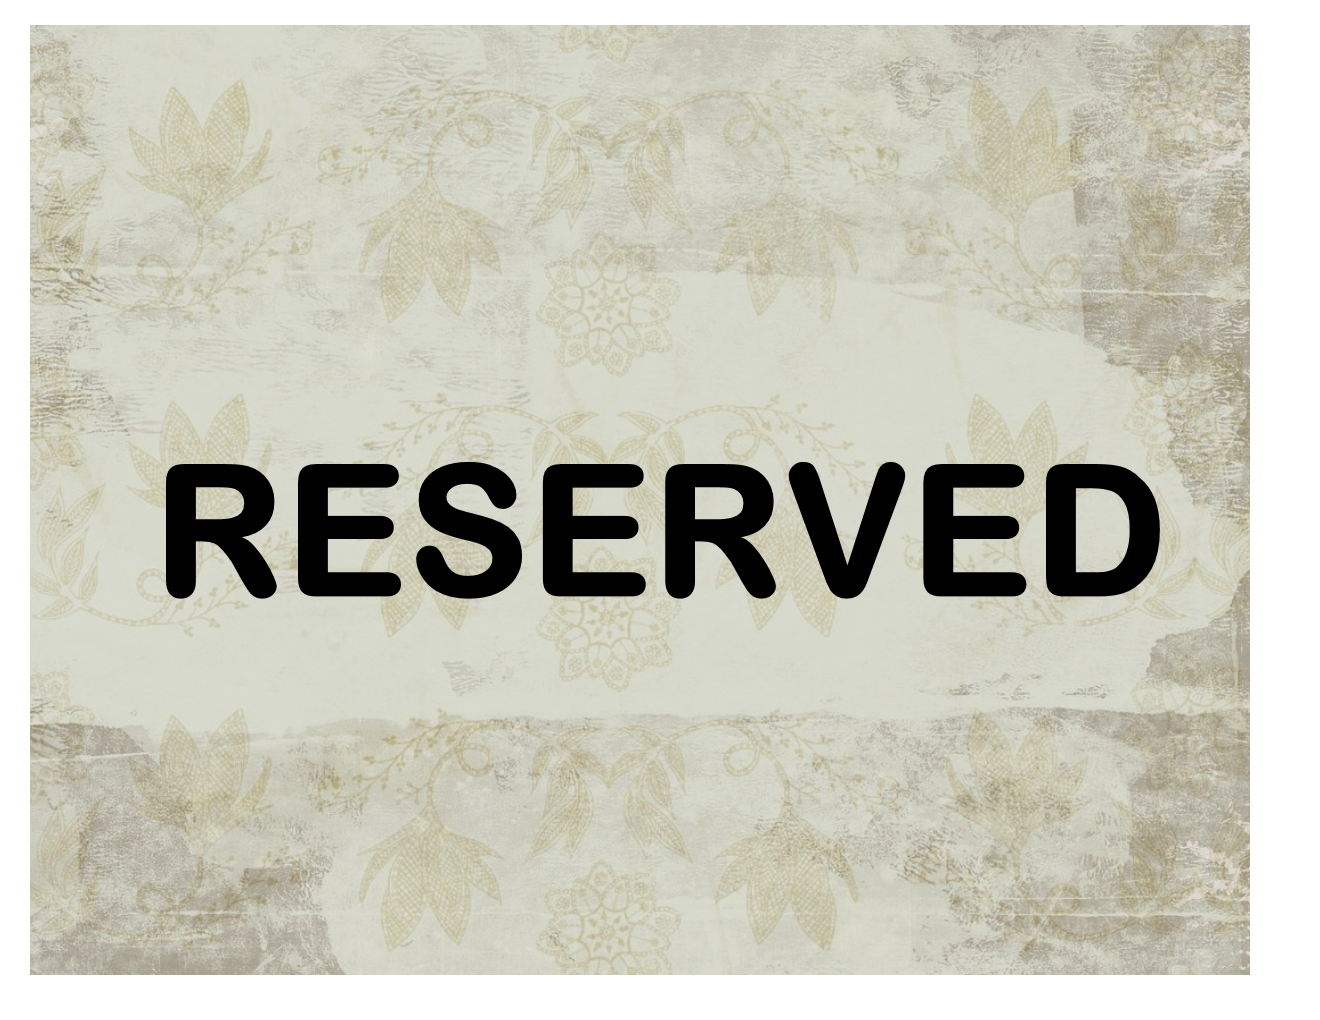 Reserved sign for Reserved parking signs template